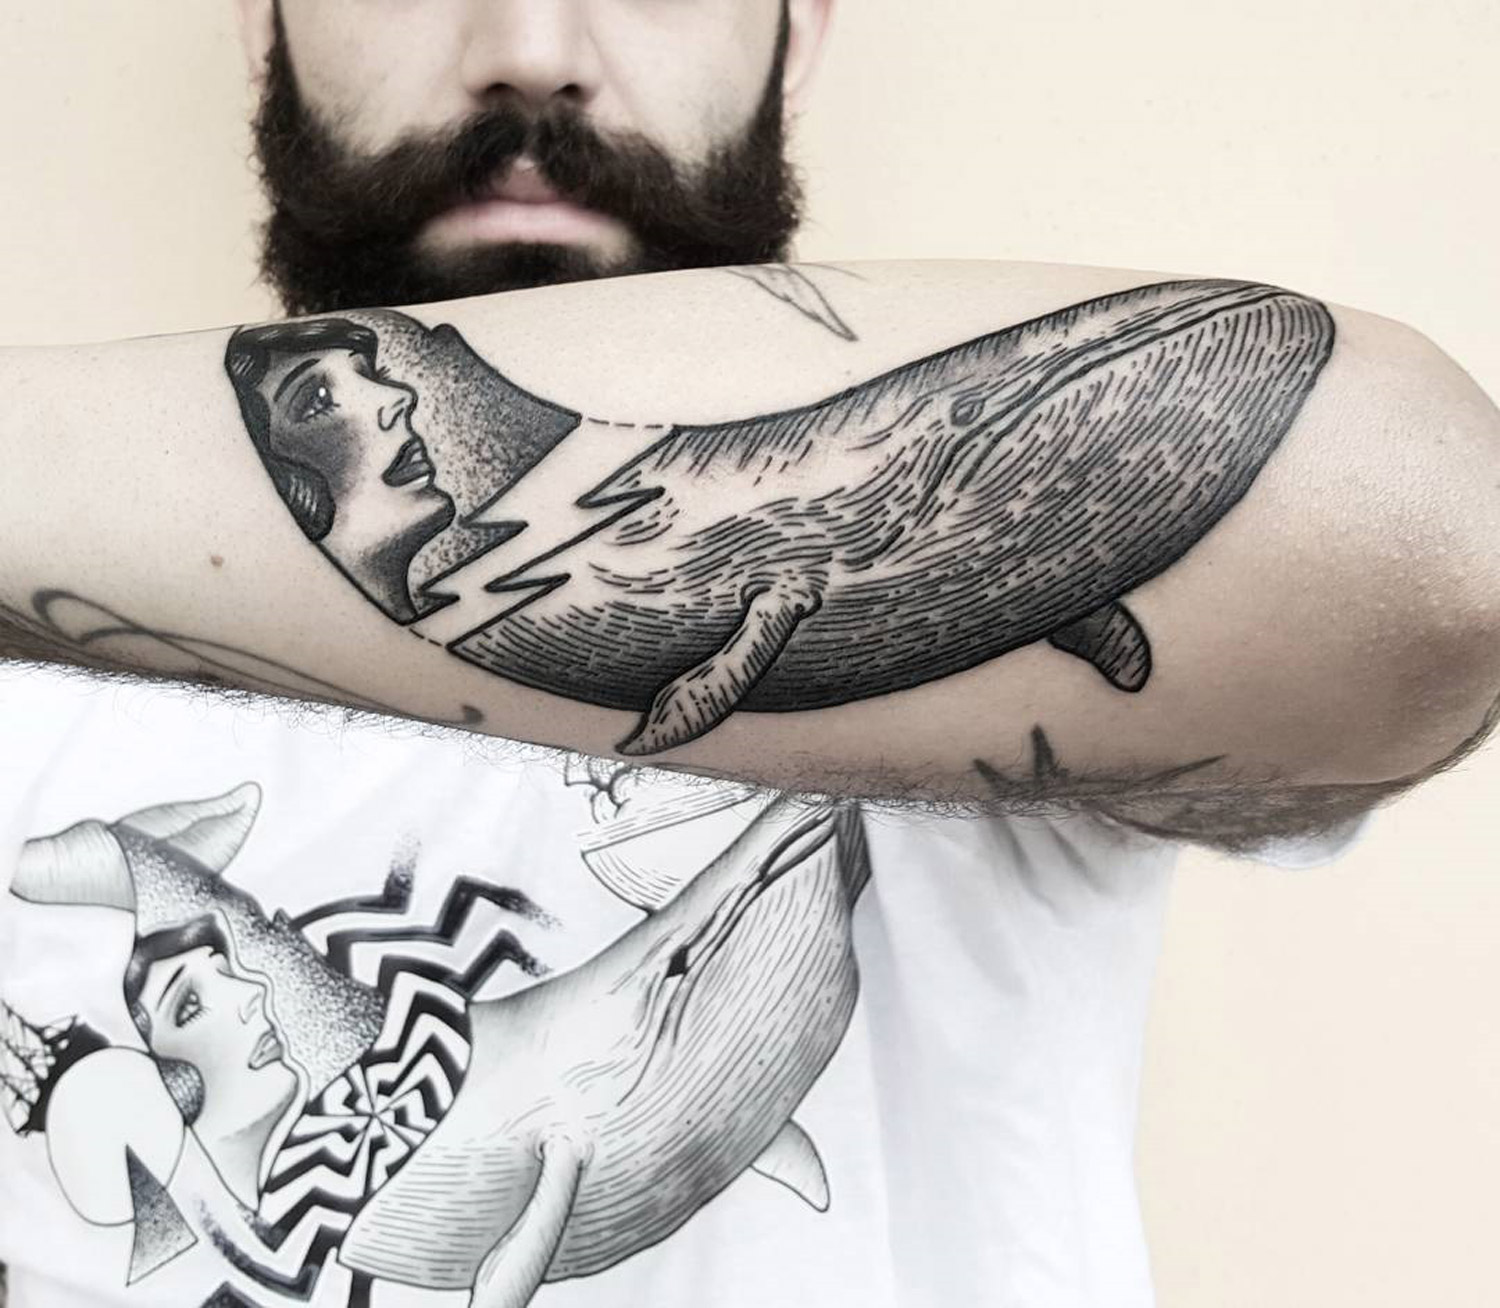 portrait of woman in the tale of a whale on forearm by matteo nangeroni